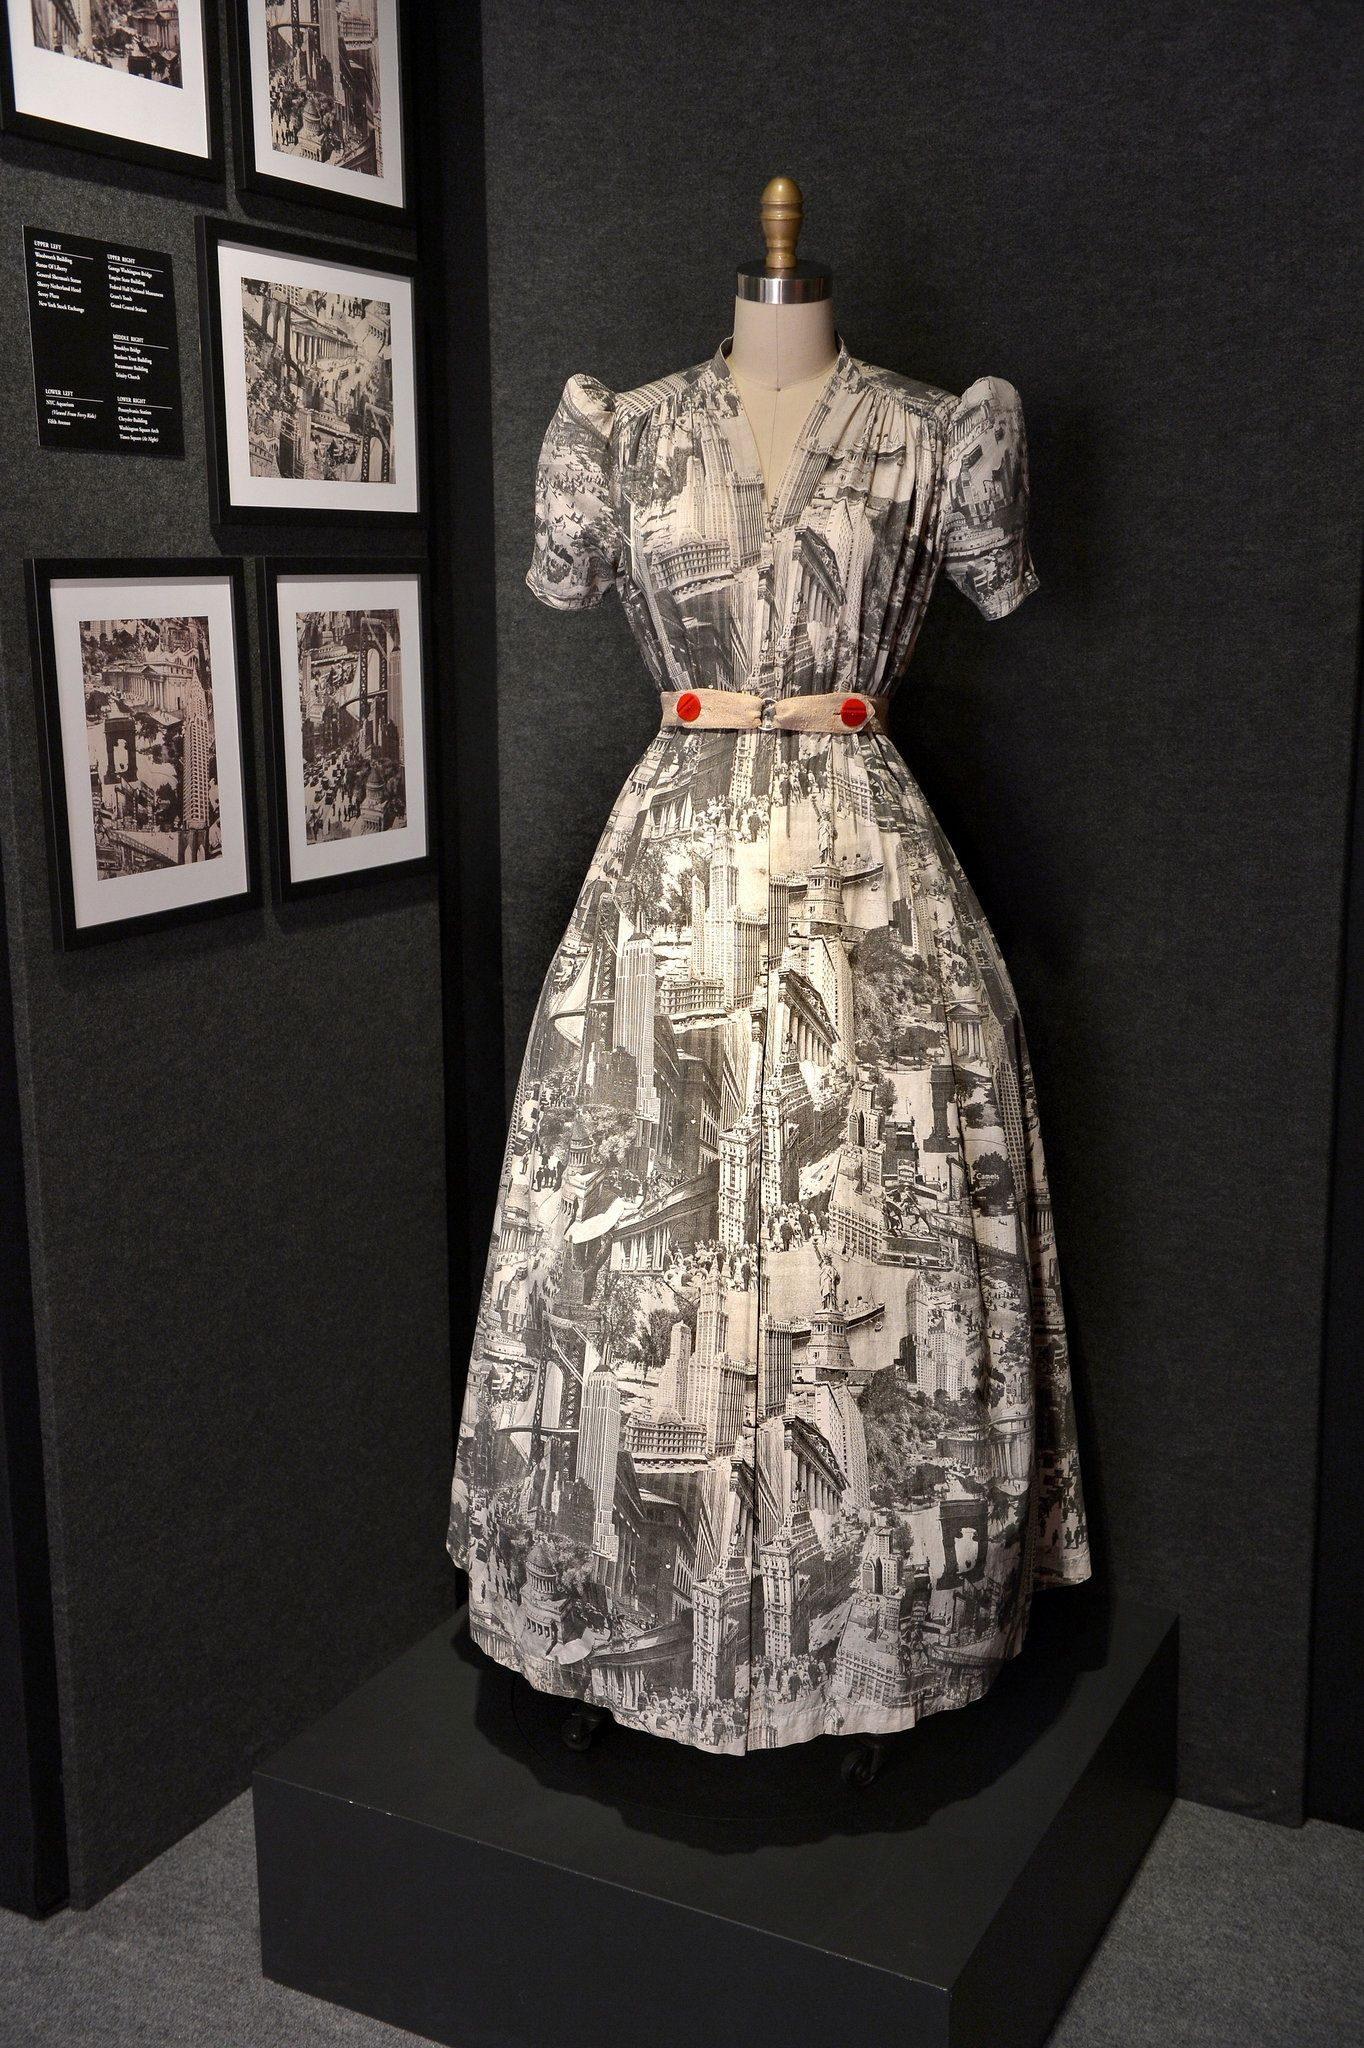 This dress, which was on view at the Winter Antiques Show, offers a photographic tour of 1930s New York.